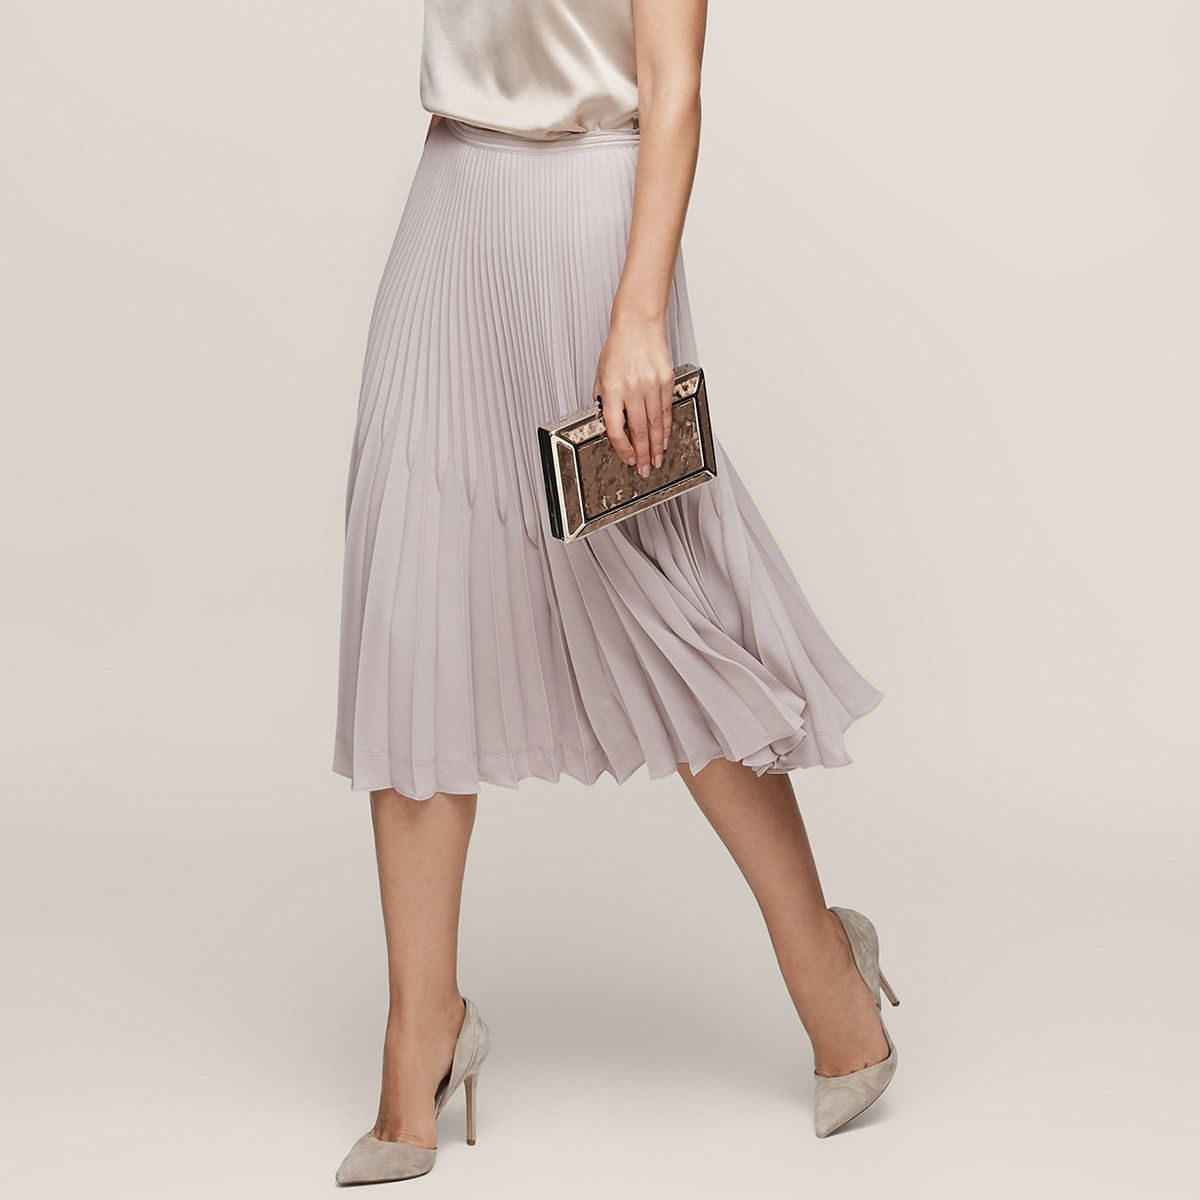 84e6bb87e6 Rosie Steel Knife-Pleat Midi Skirt - REISS | Clothes/Accessories ...